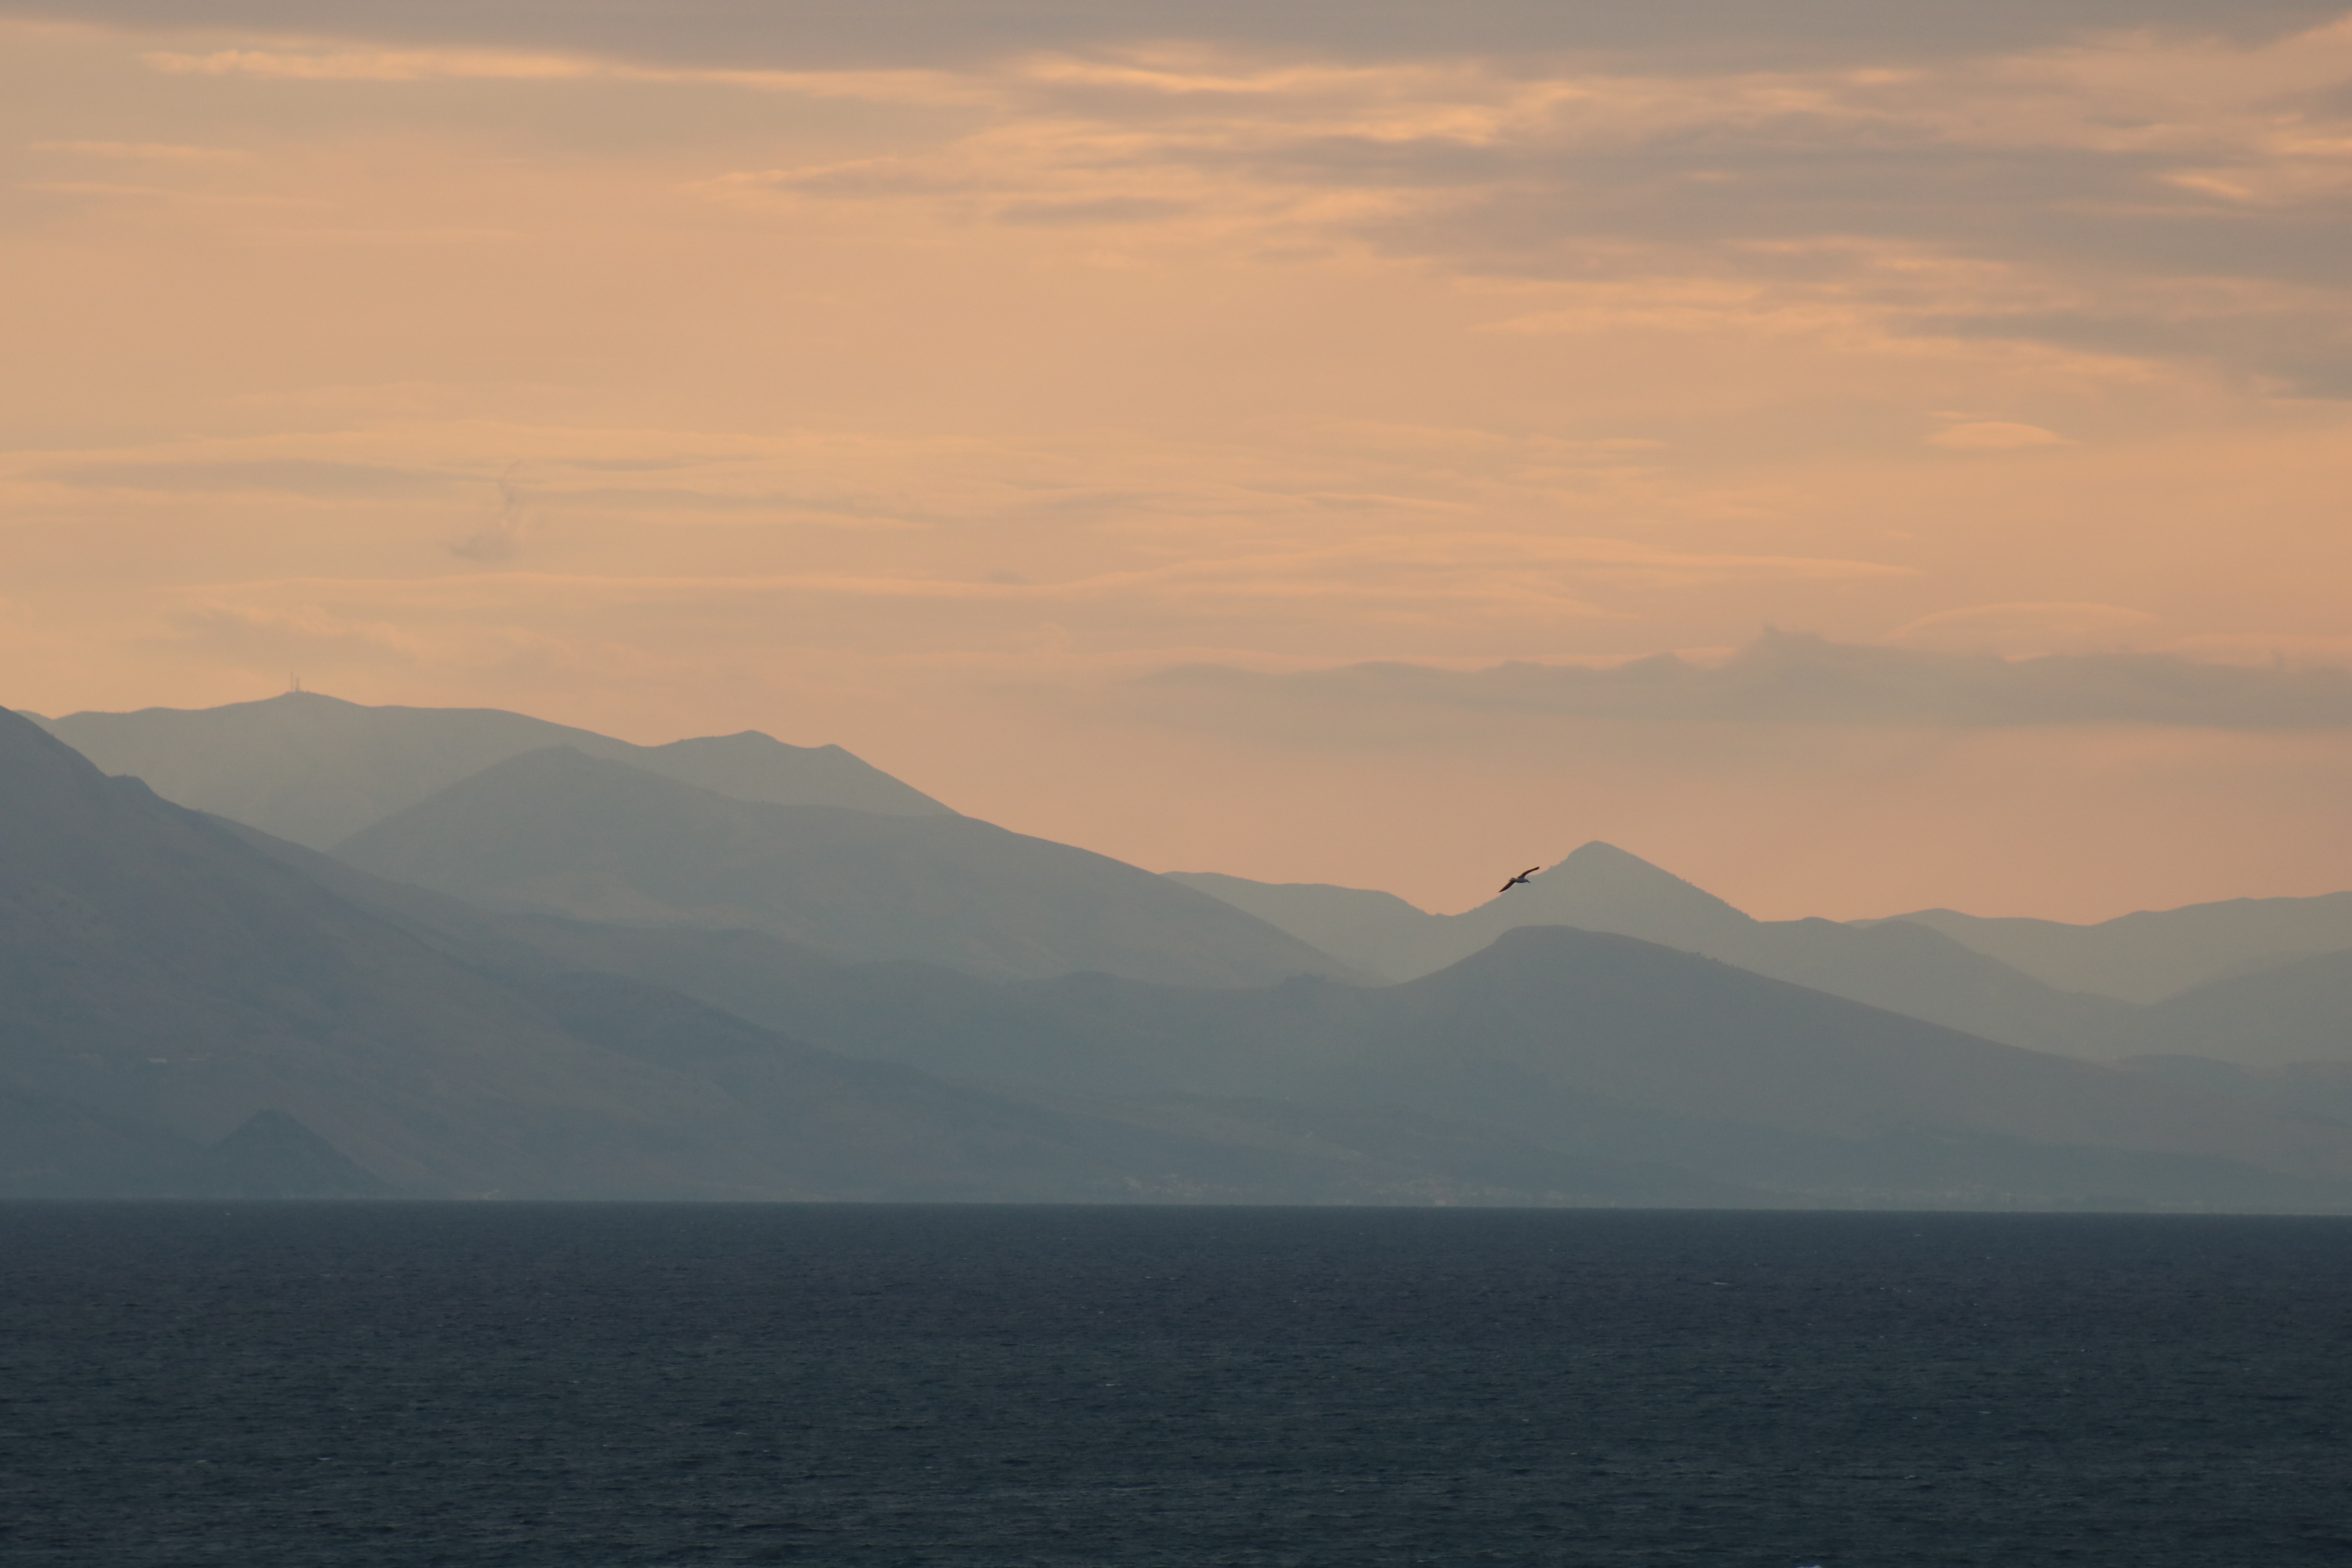 image of corfu greece, mountains, sea and bird at sunset